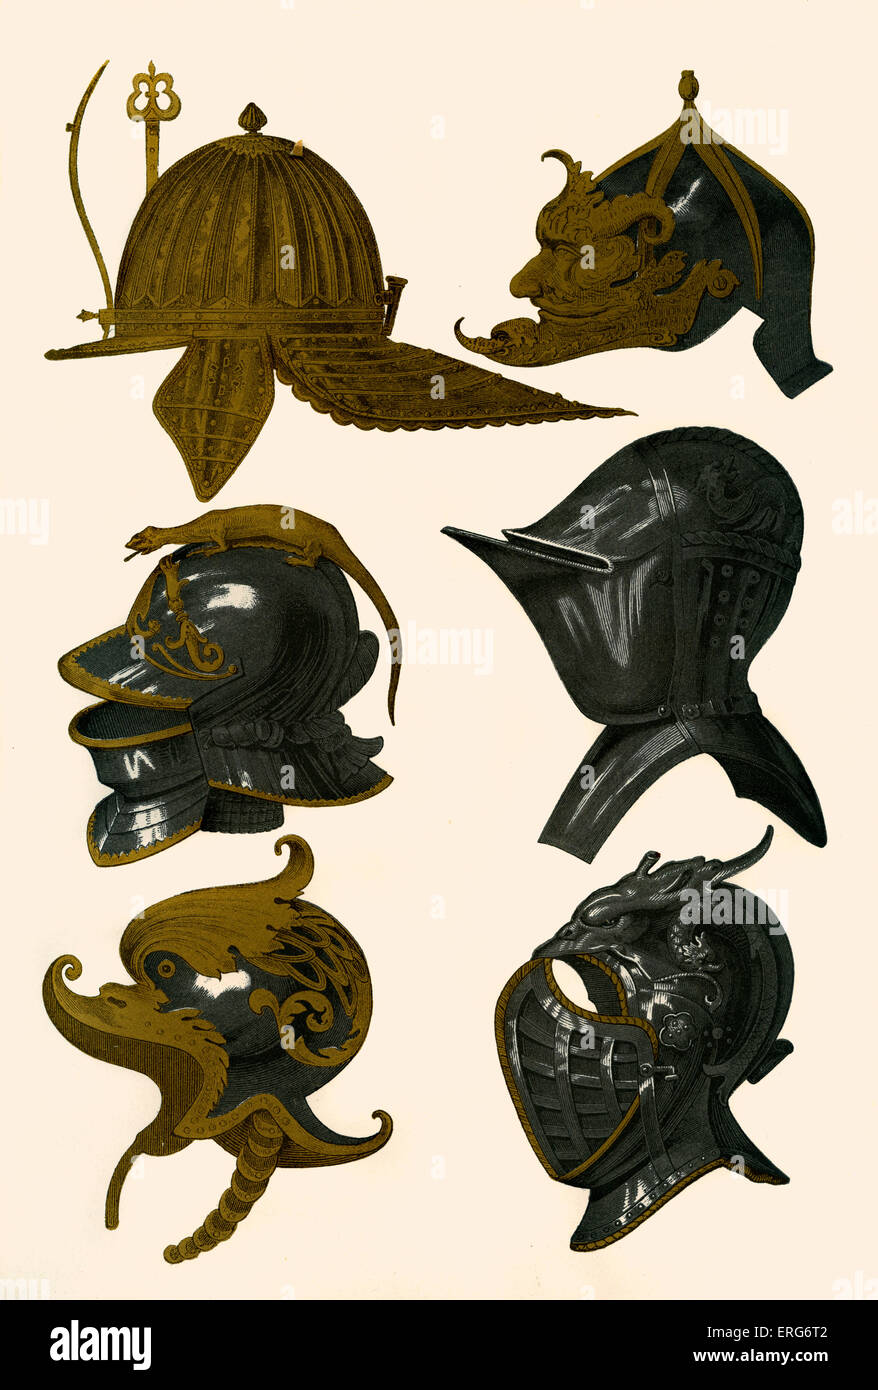 Helmets and Morions of the Middle Ages. Chromolithograph printed by Franz Kellerhoven, 1814 - 1872. - Stock Image